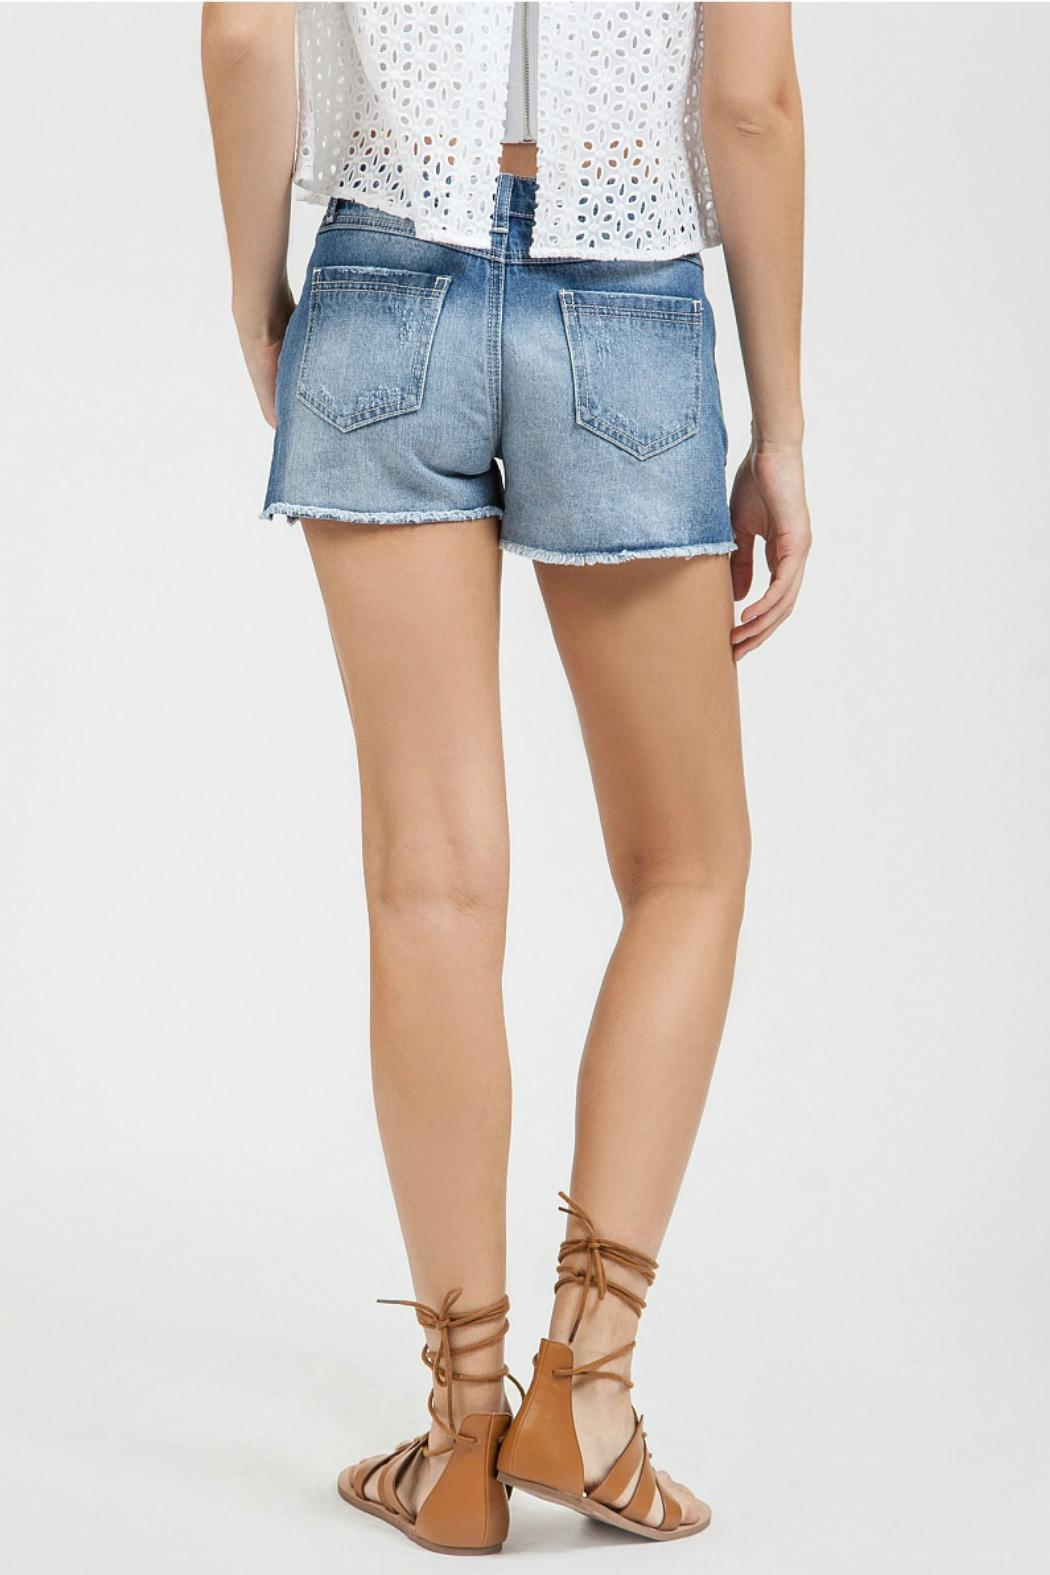 Blu Pepper Embroidered Denim Shorts - Front Full Image